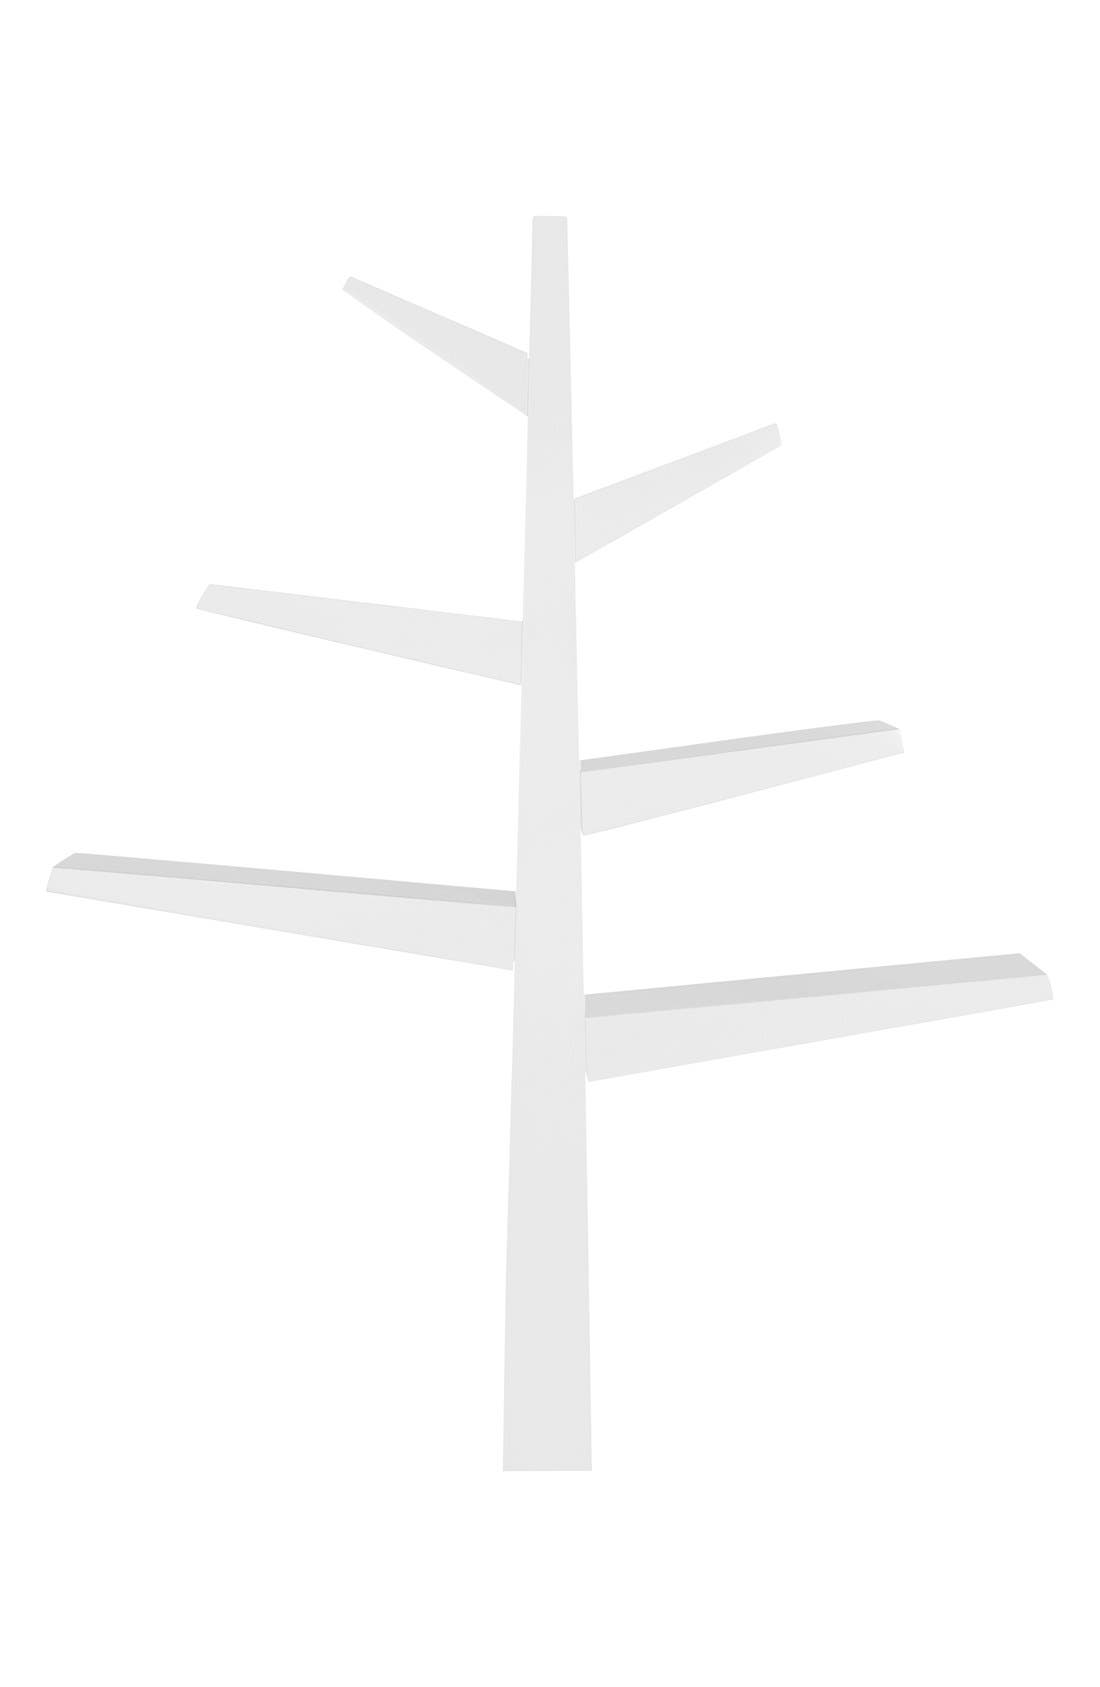 babyletto 'Spruce Tree' Bookcase